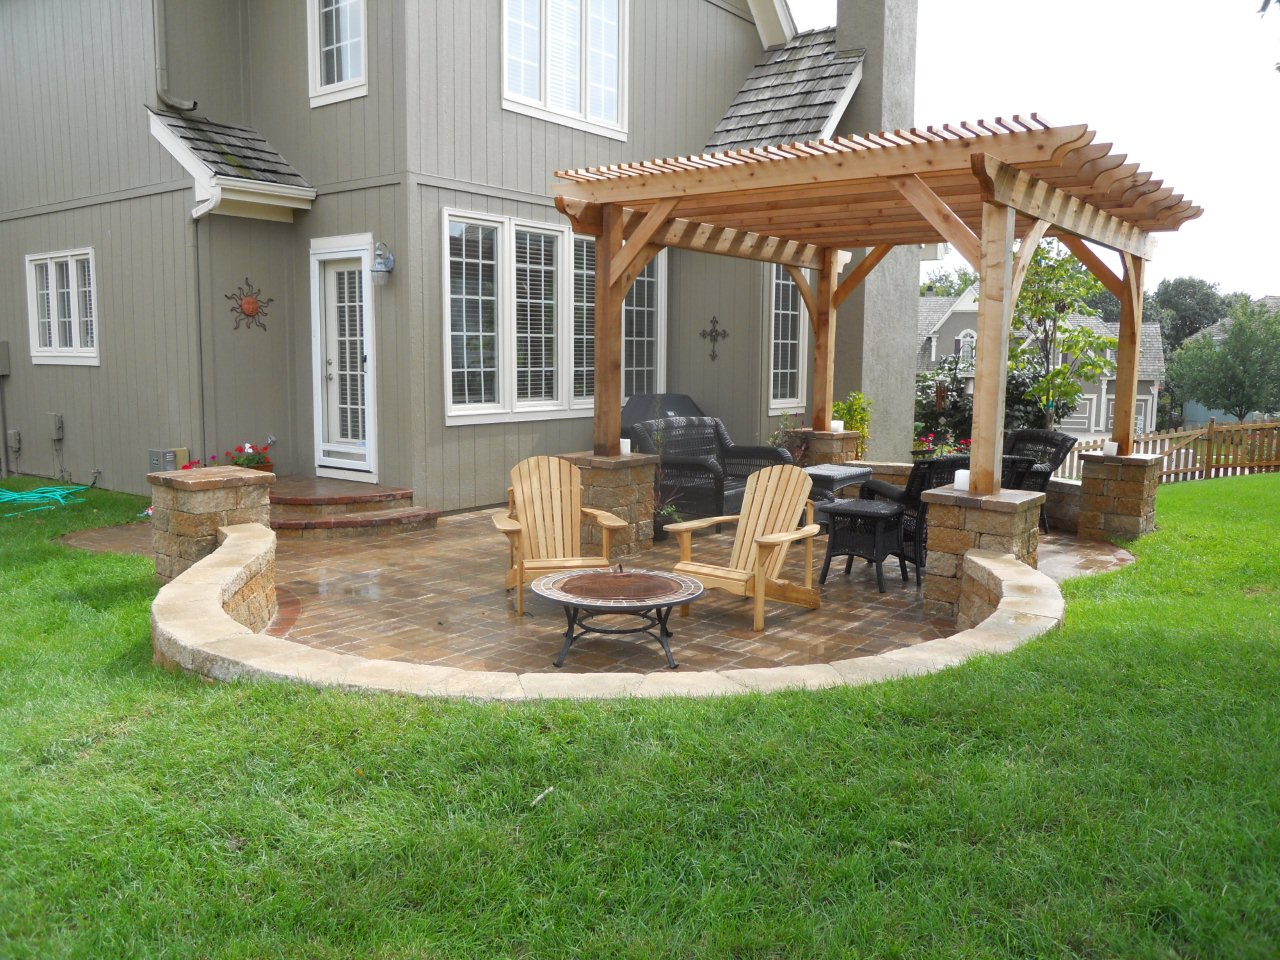 Backyard Gazebo Landscaping Ideas